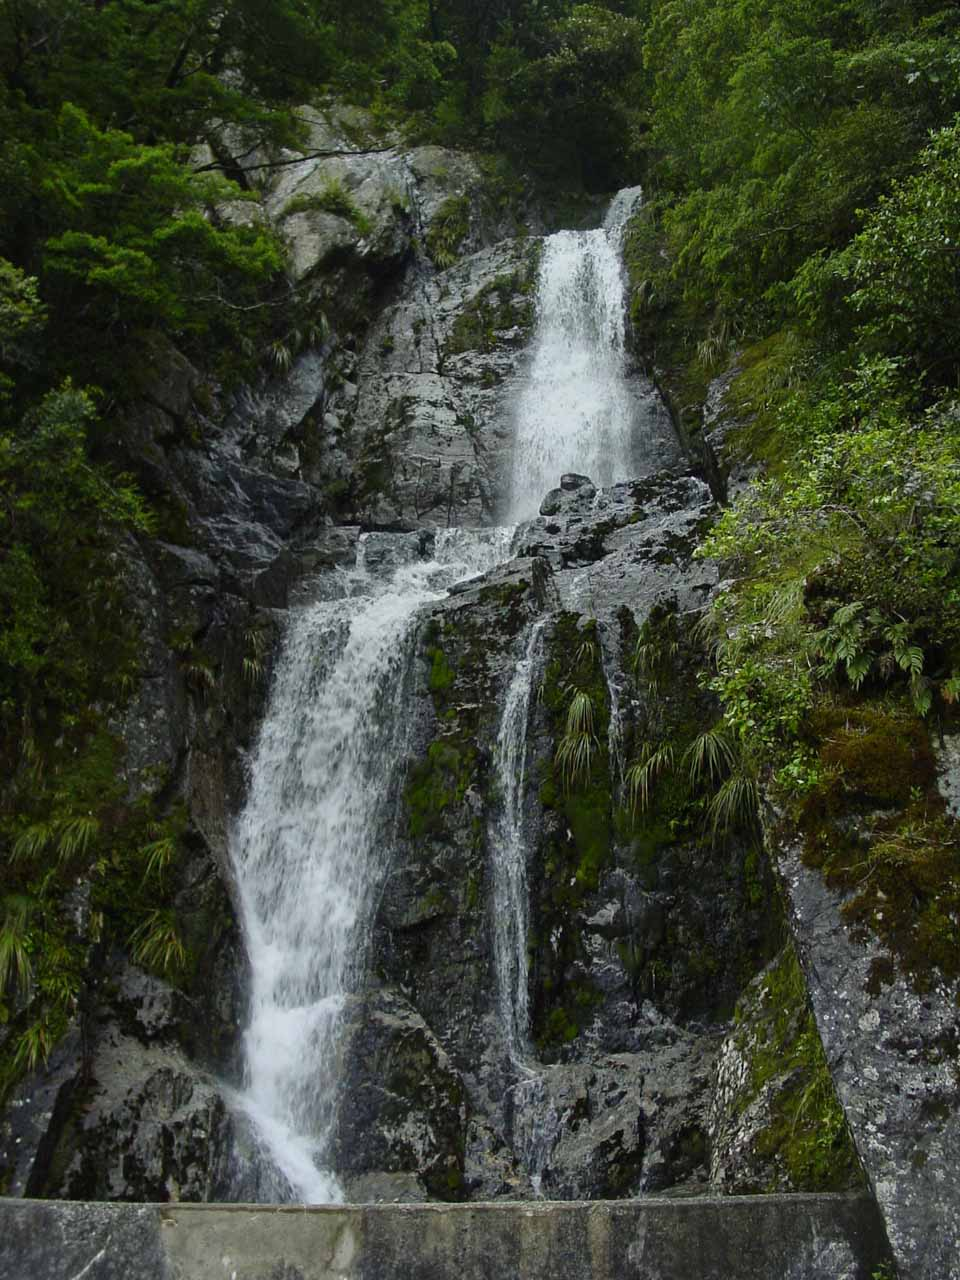 Another roadside waterfall somewhere near Fantail Falls